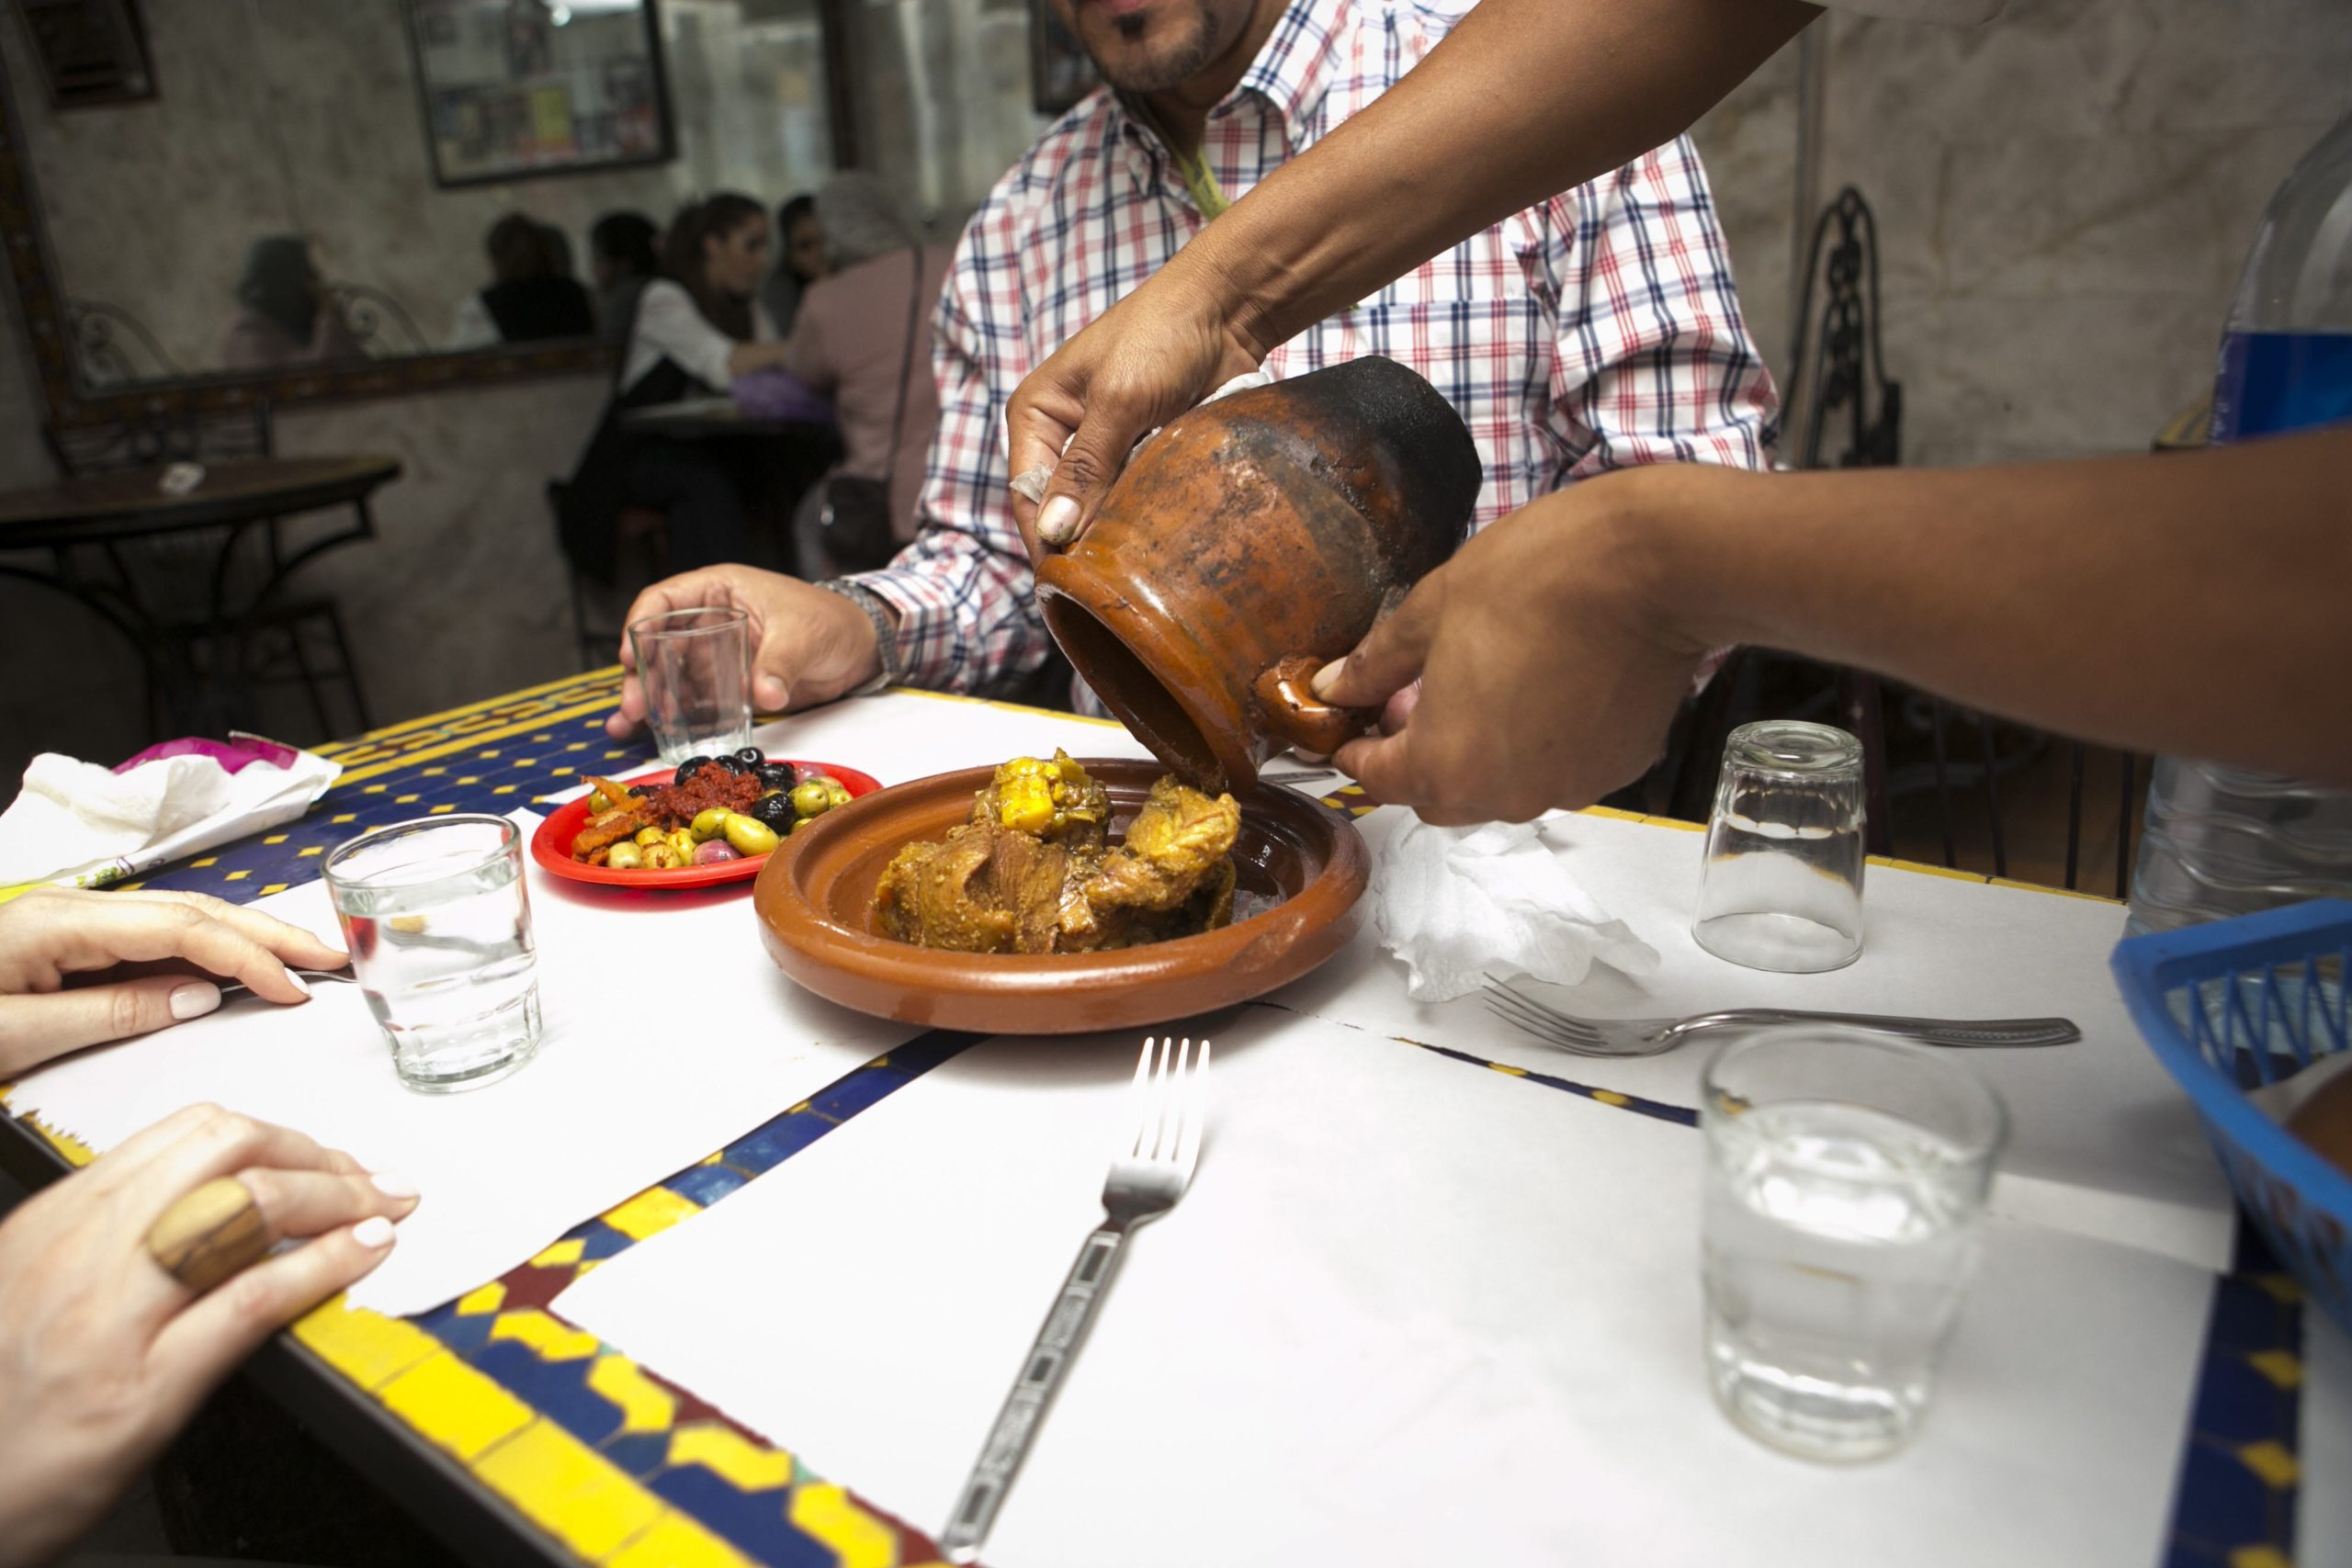 Tasting Marrakech food tours take guests to local, in-the-know food haunts